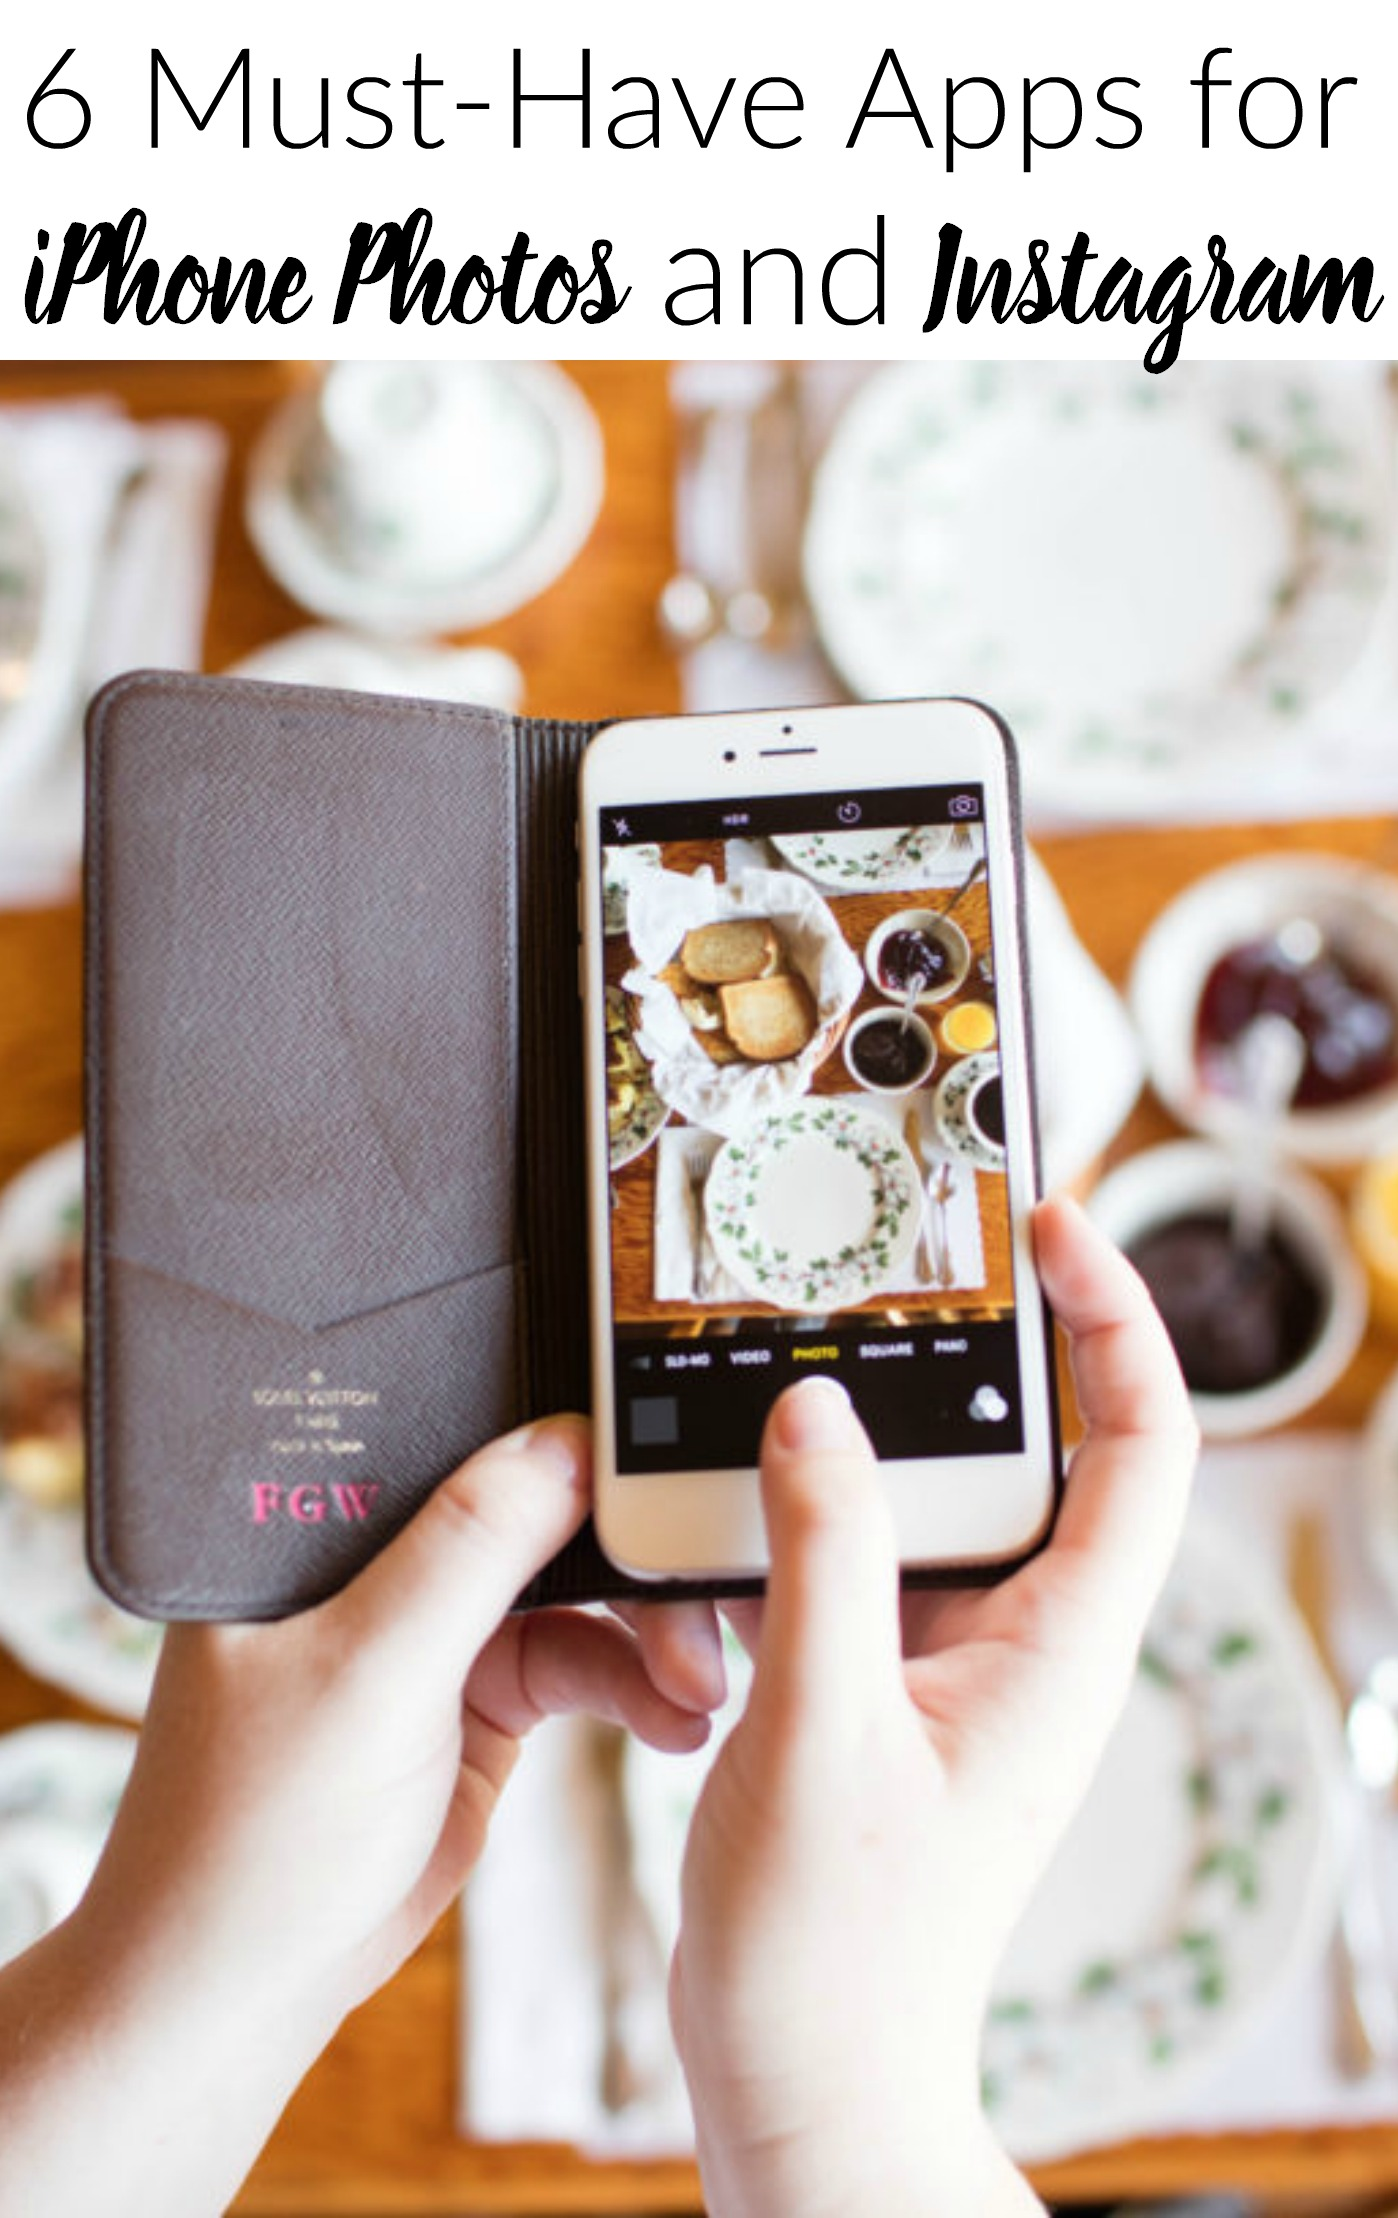 6 Must-Hav Apps for iPhones Photos and Instagram.This is the best tutorial for iPhone picture apps. So easy to follow!